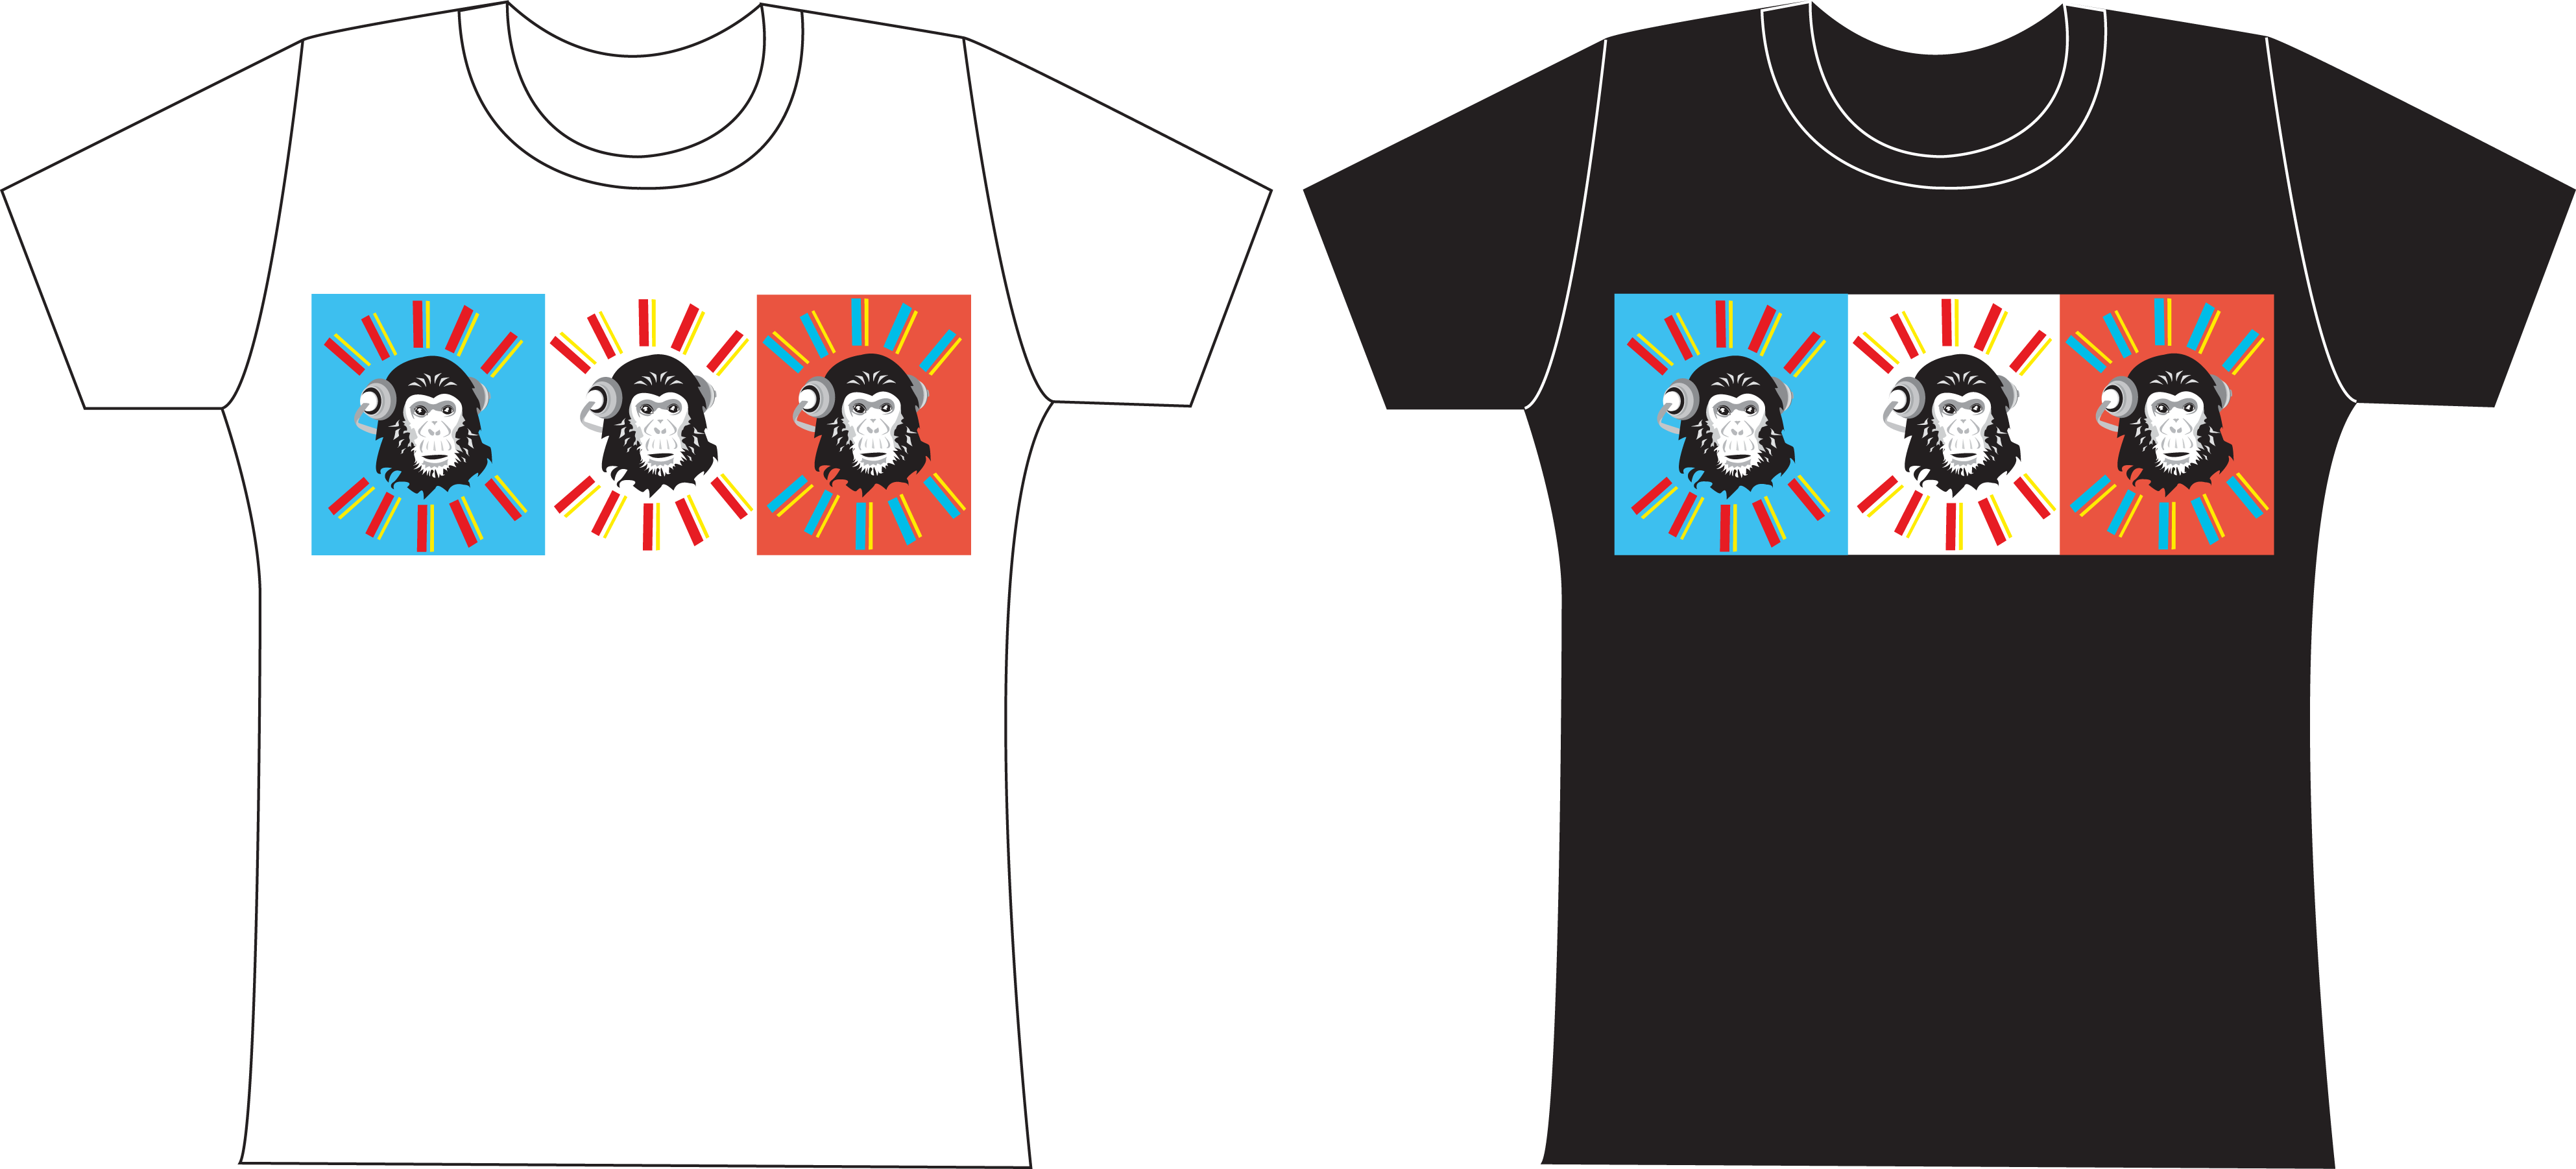 Crazy chimp t shirt designs 1 by jezzy fezzy on deviantart for Crazy t shirt designs